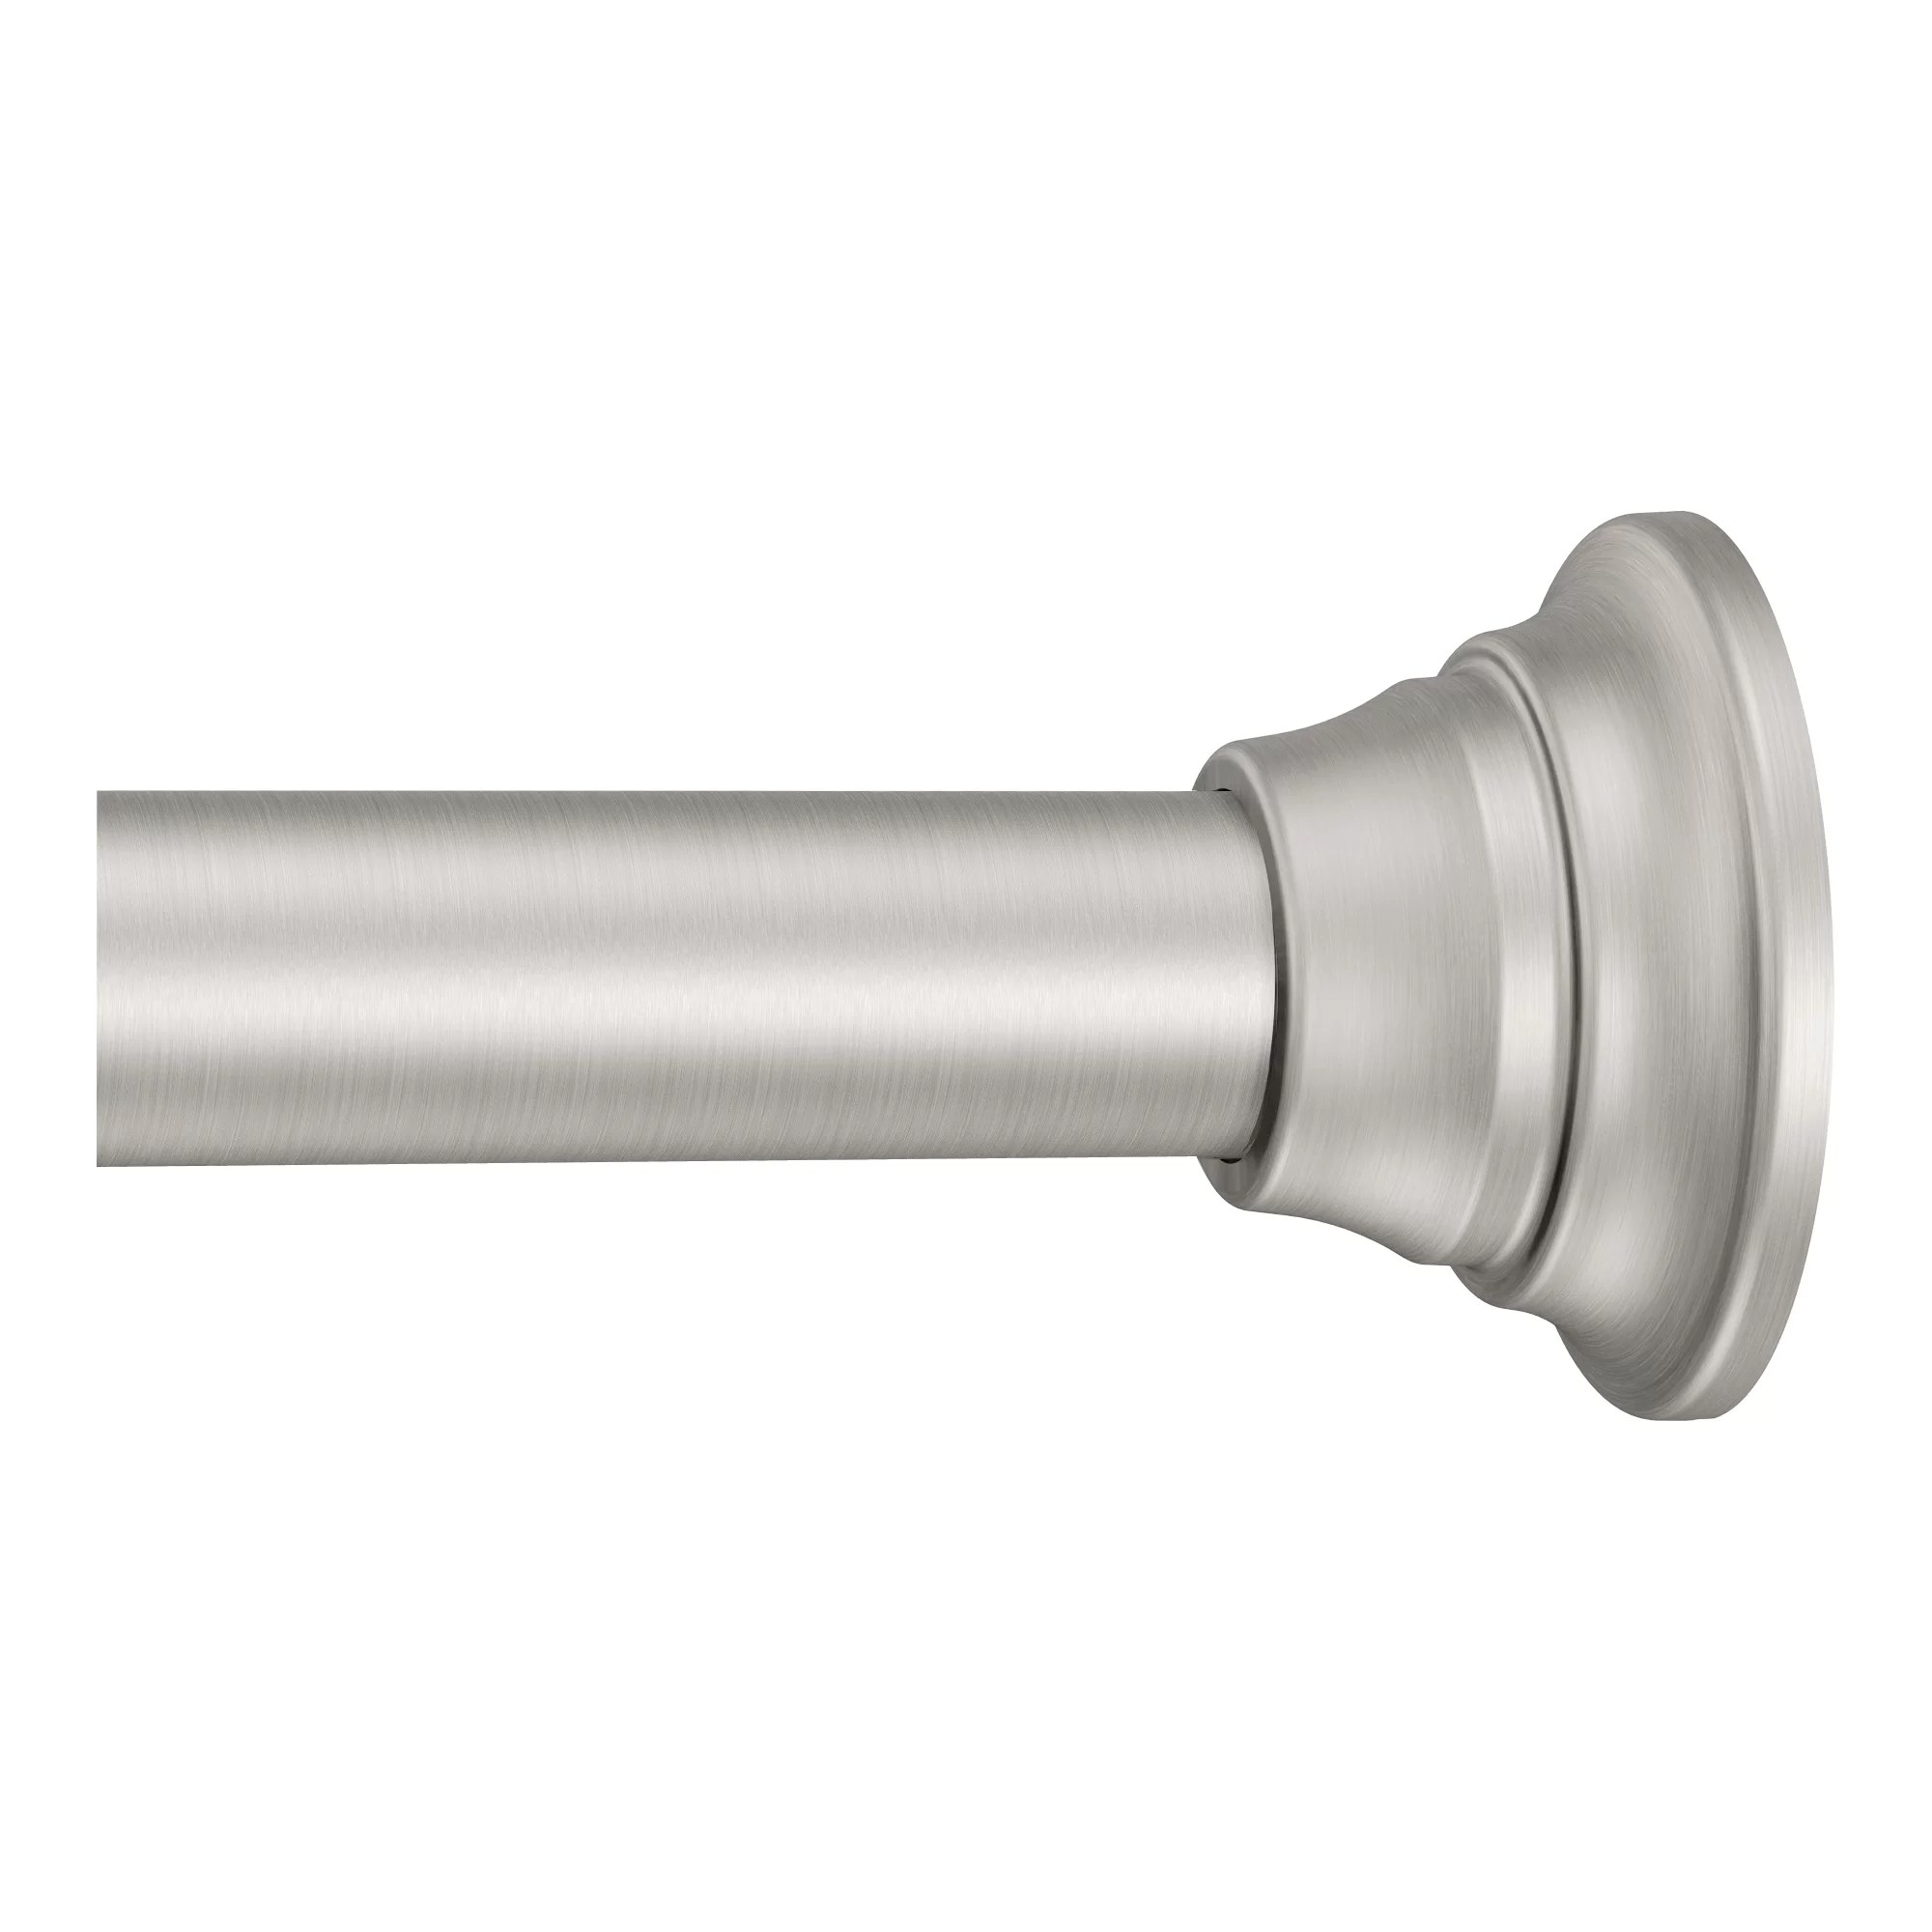 Adjustable Curtain Rods 72